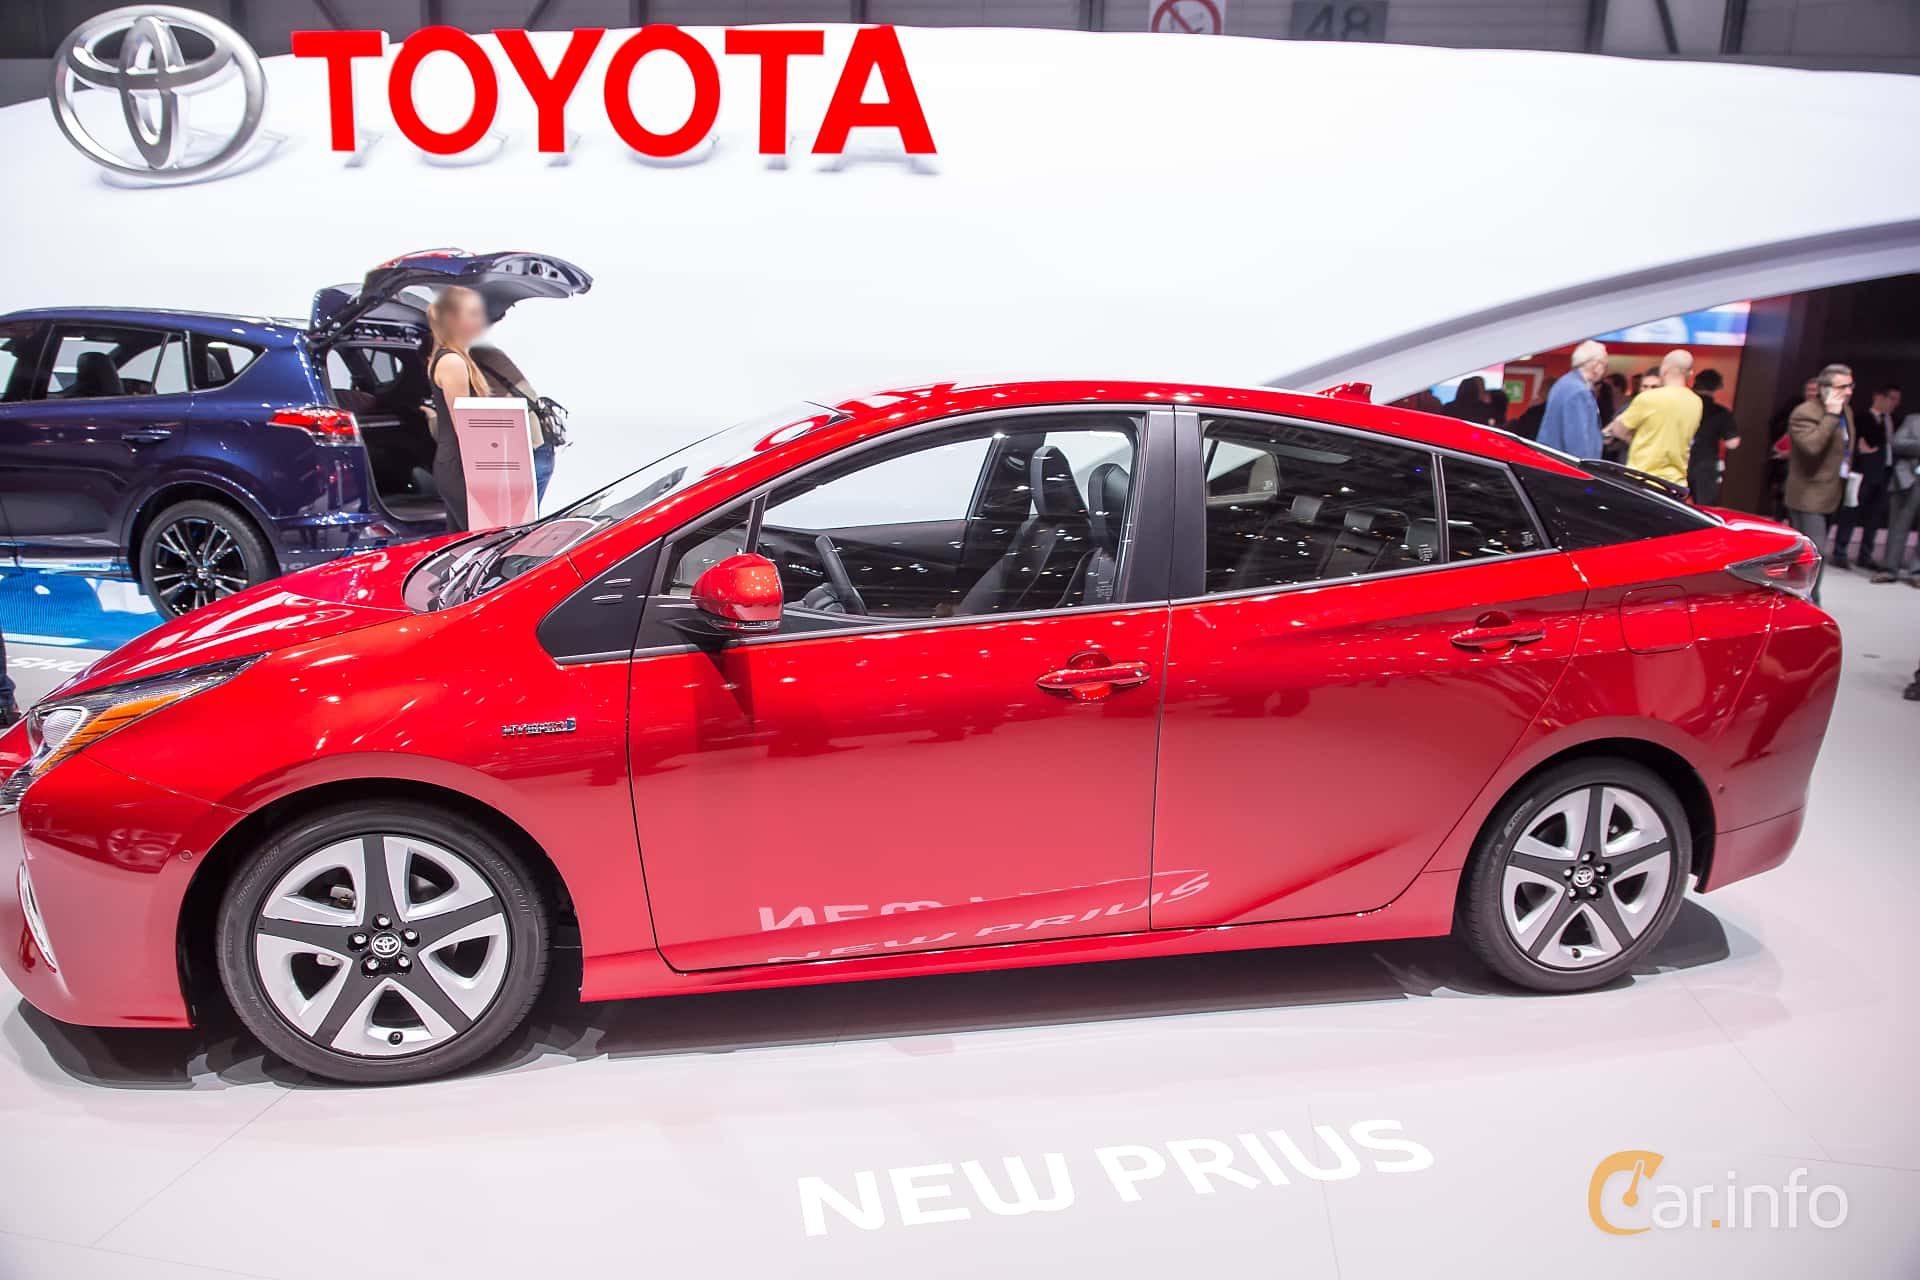 Excellent Toyota Prius Hybrid 18 VVTi CVT 123hp 2016 At Geneva